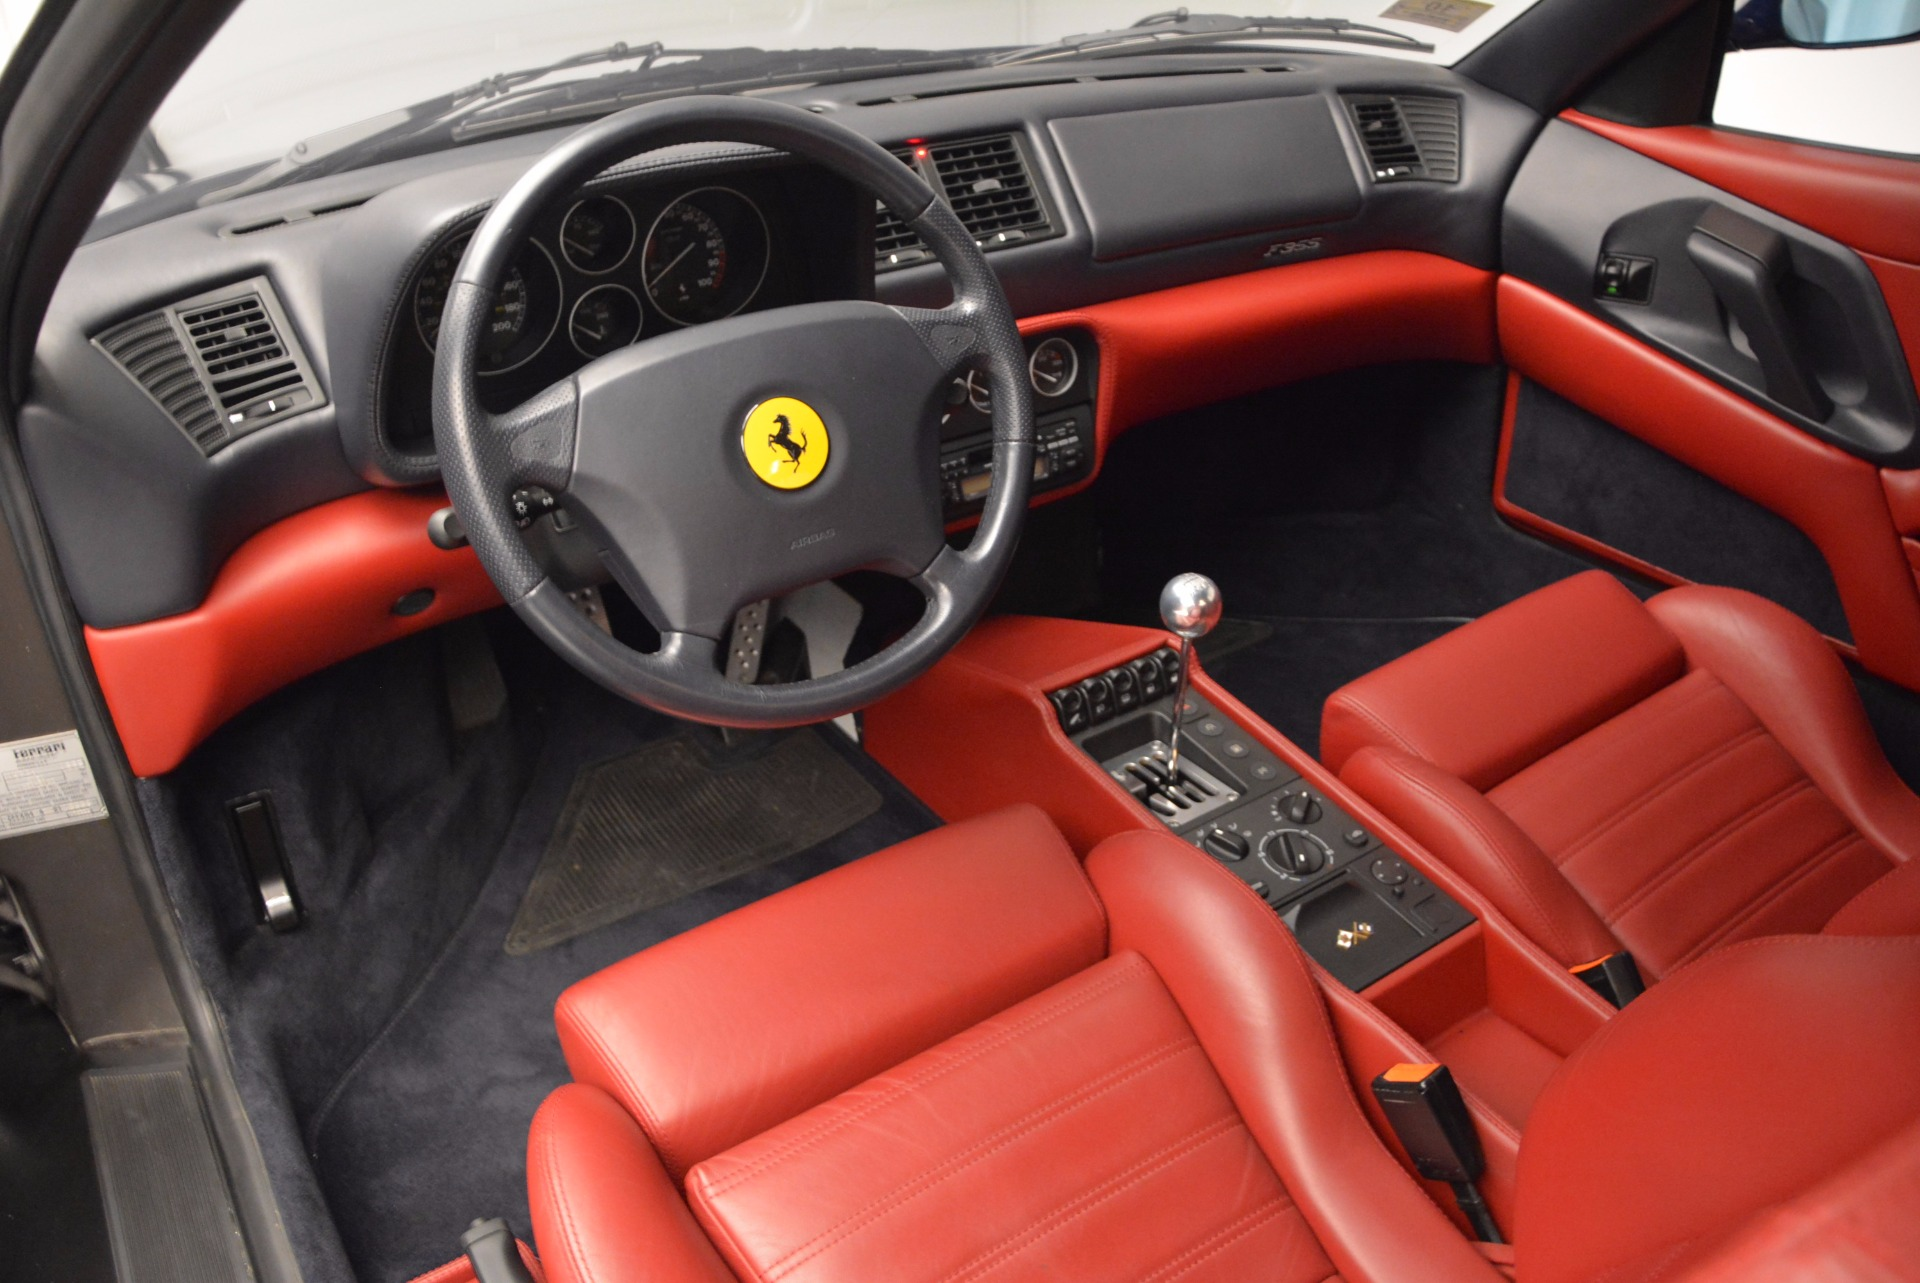 Used 1999 Ferrari 355 Berlinetta For Sale In Westport, CT 855_p14